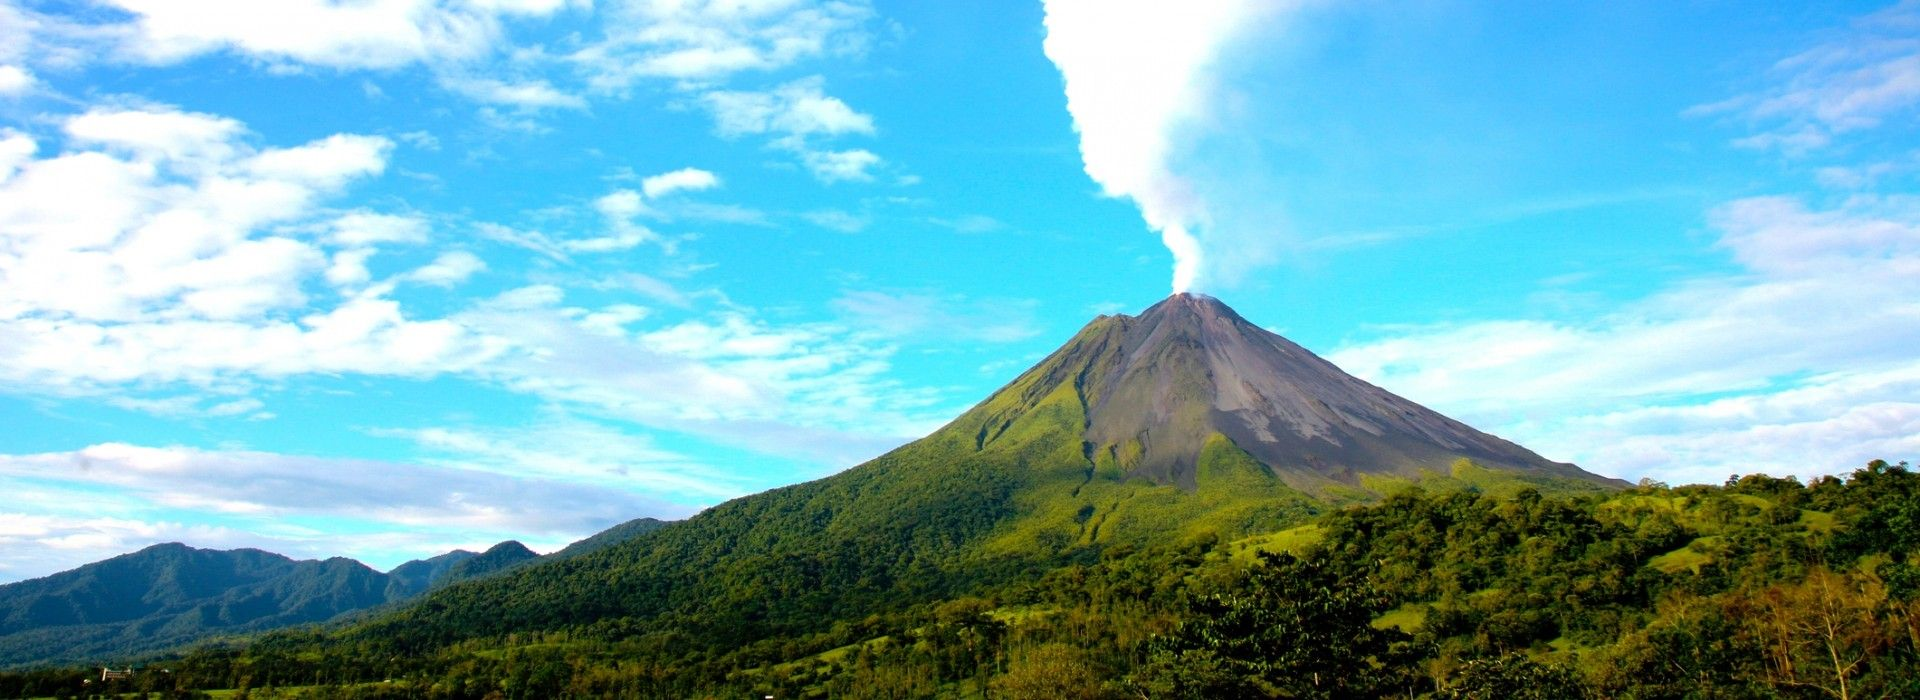 Air tours, road trips and transfers in Costa Rica